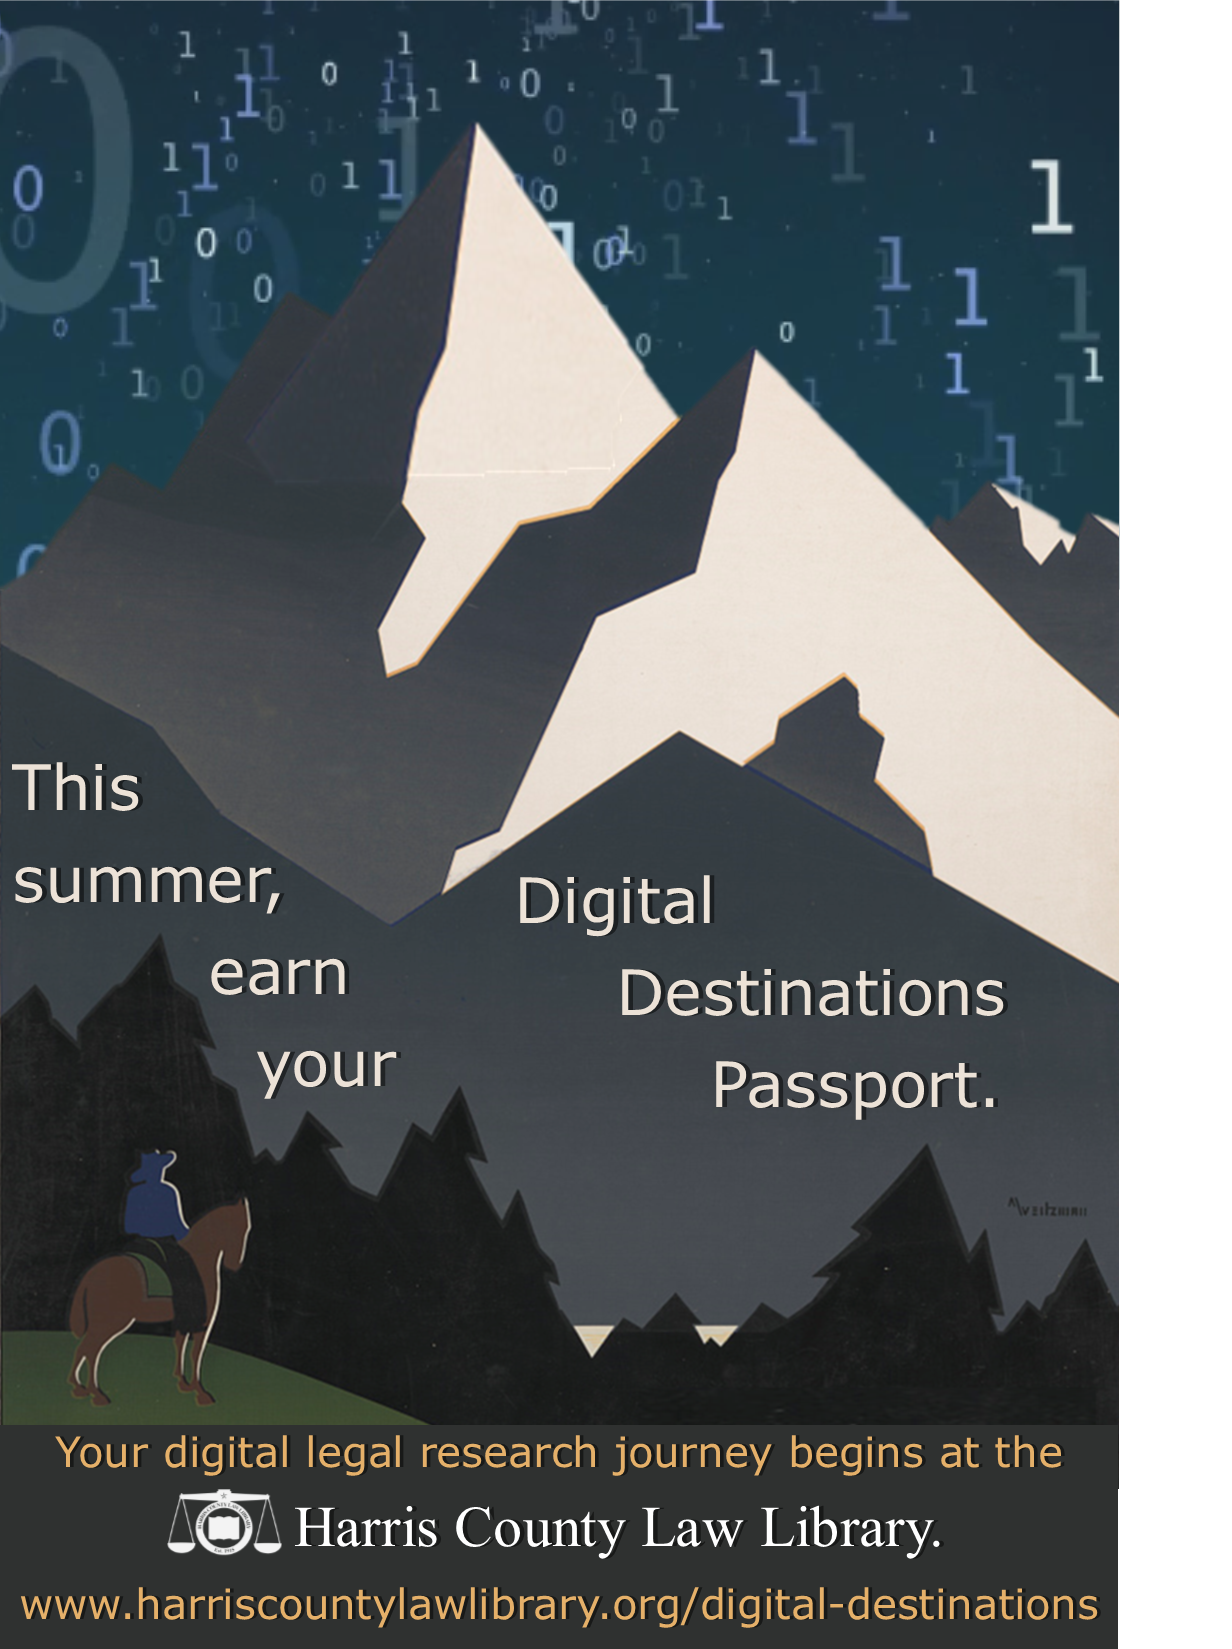 This summer, earn your Digital Destinations Passport. Your digital legal research journey begins at the Harris County Law Library.